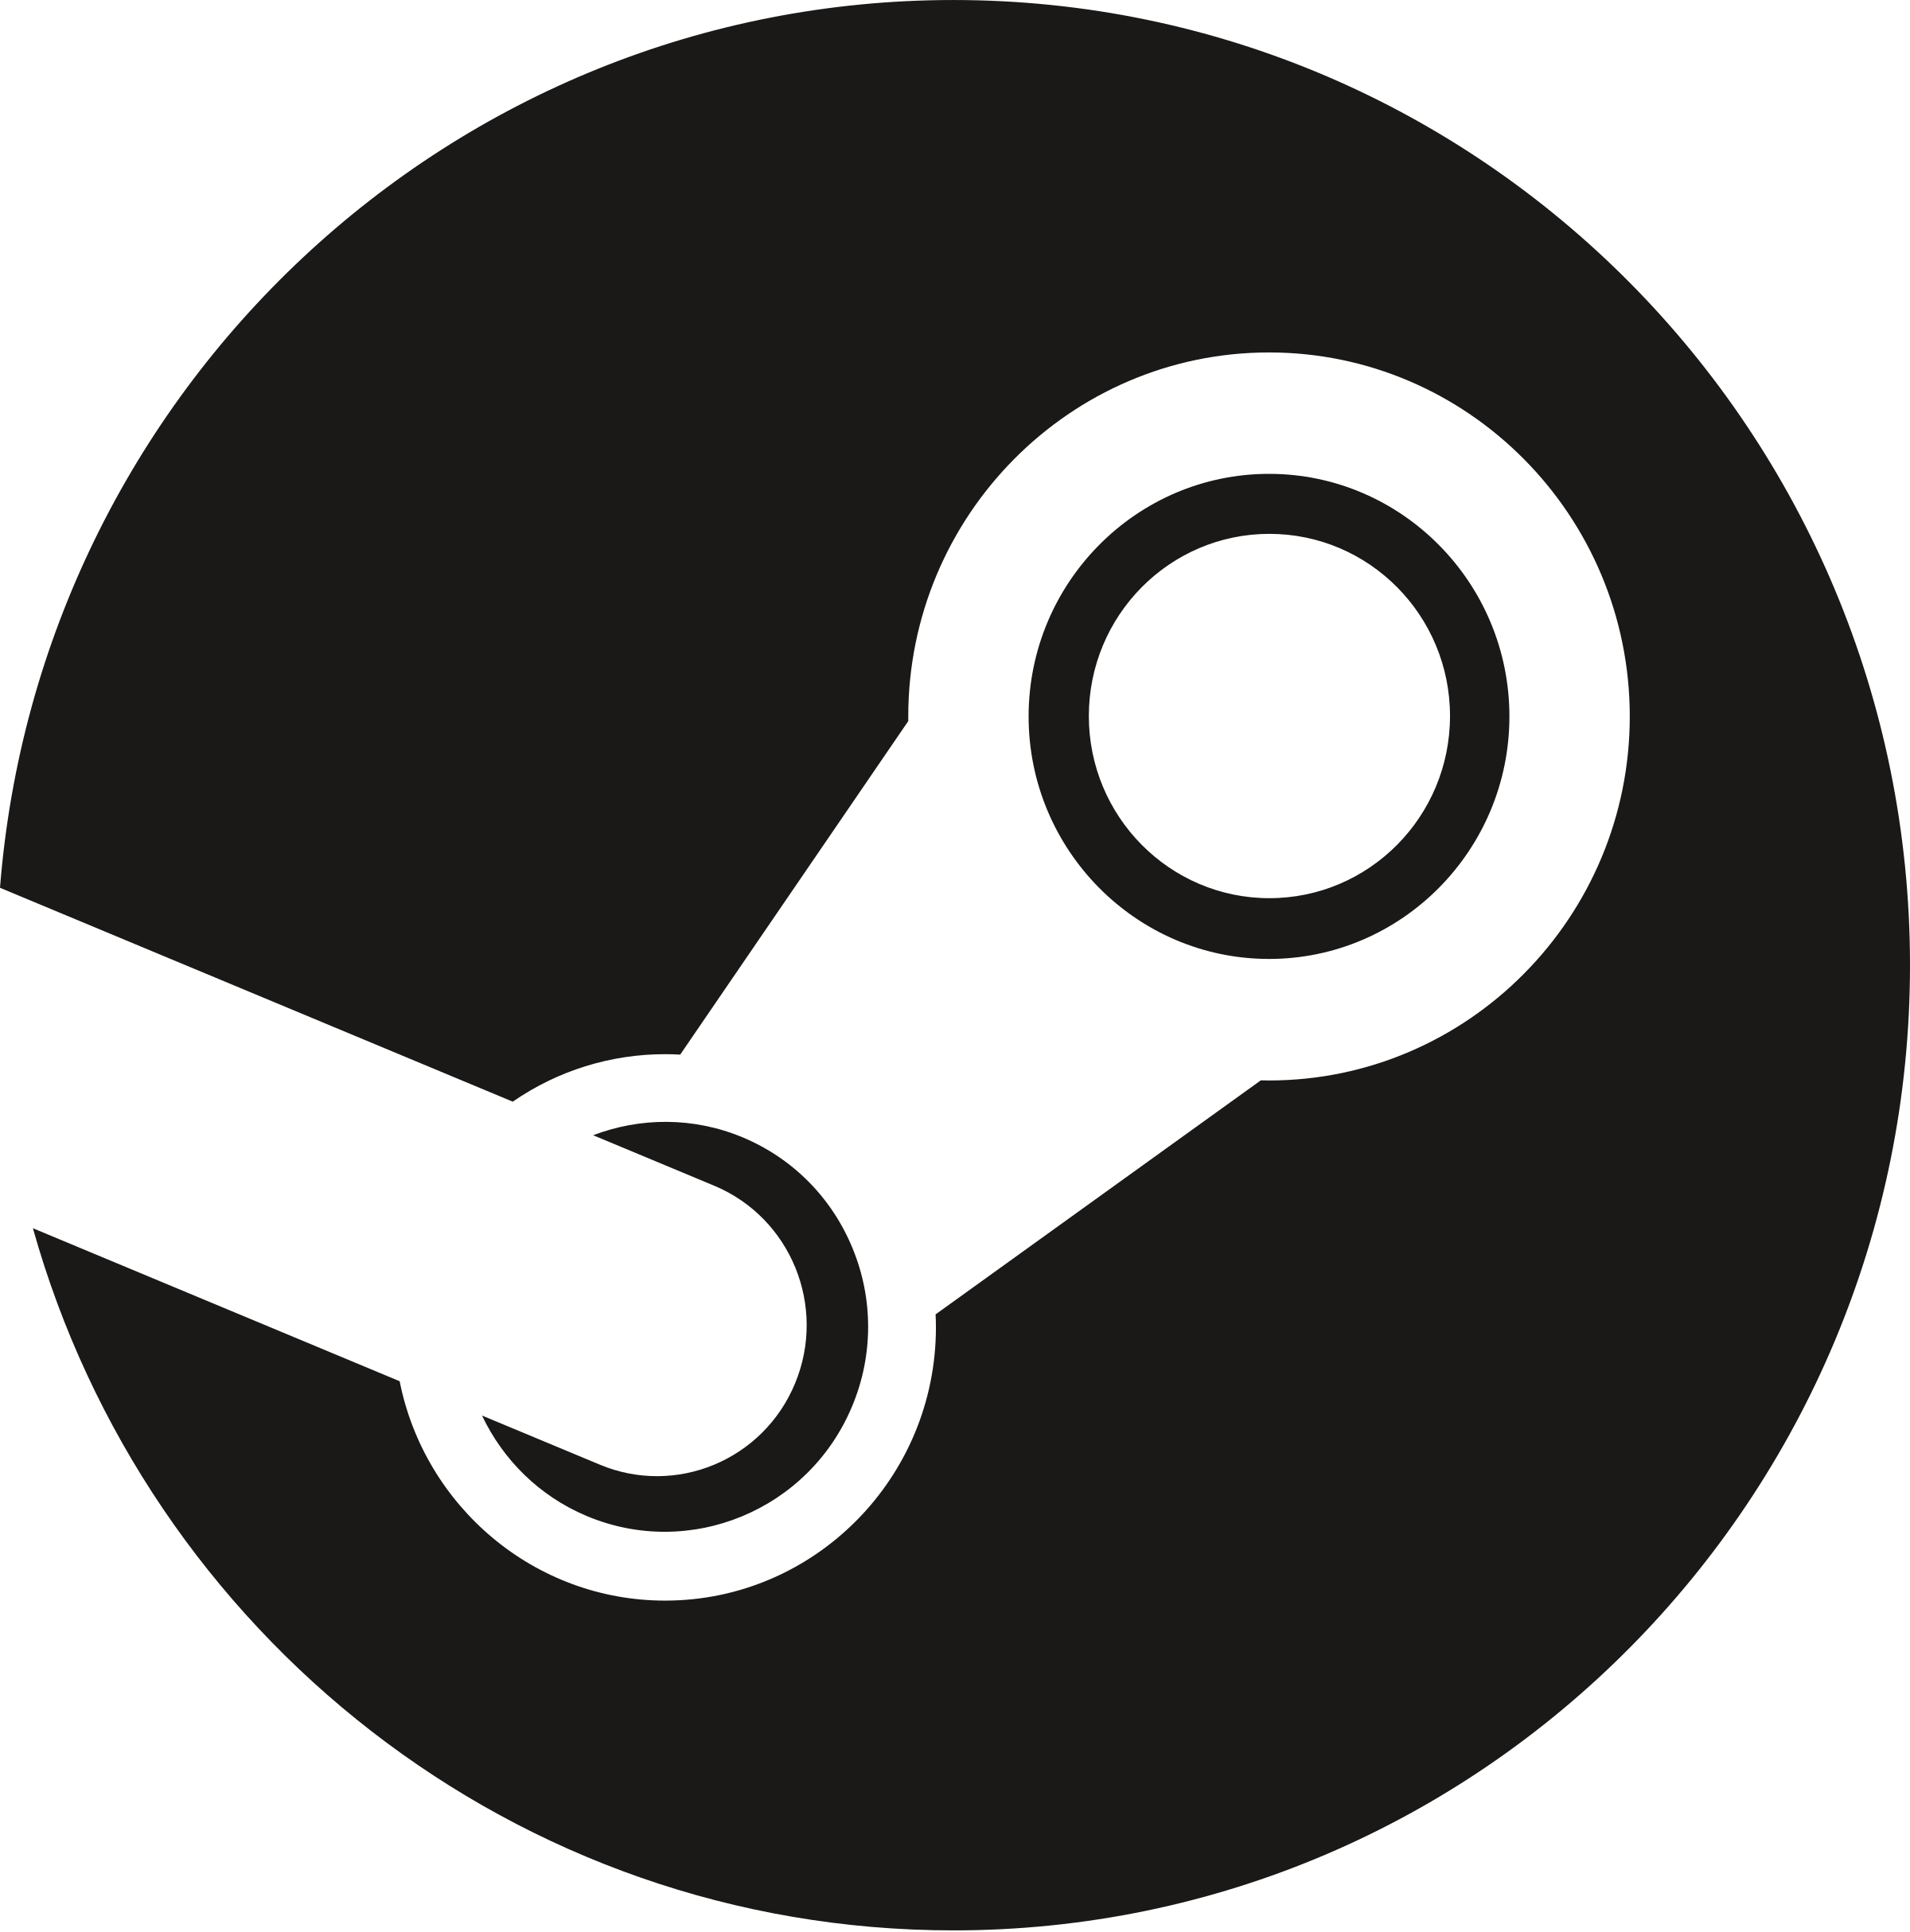 Steam logo white png. Transparent svg vector freebie